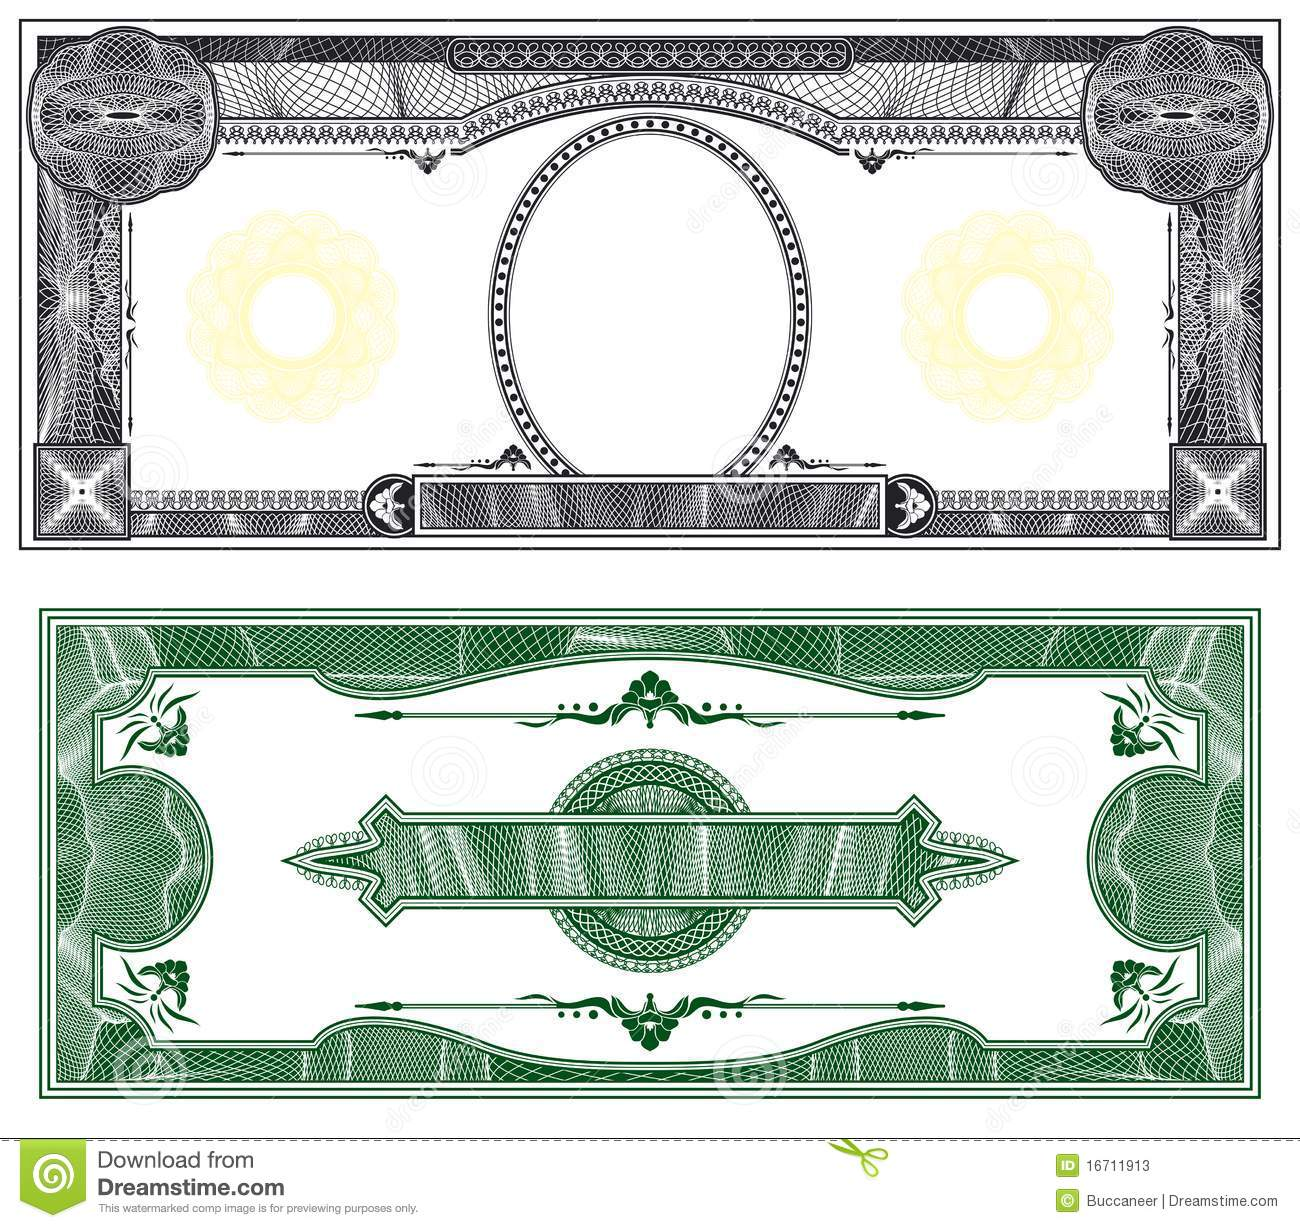 Blank Banknote Layout With Obverse And Reverse Based On Dollar Bill